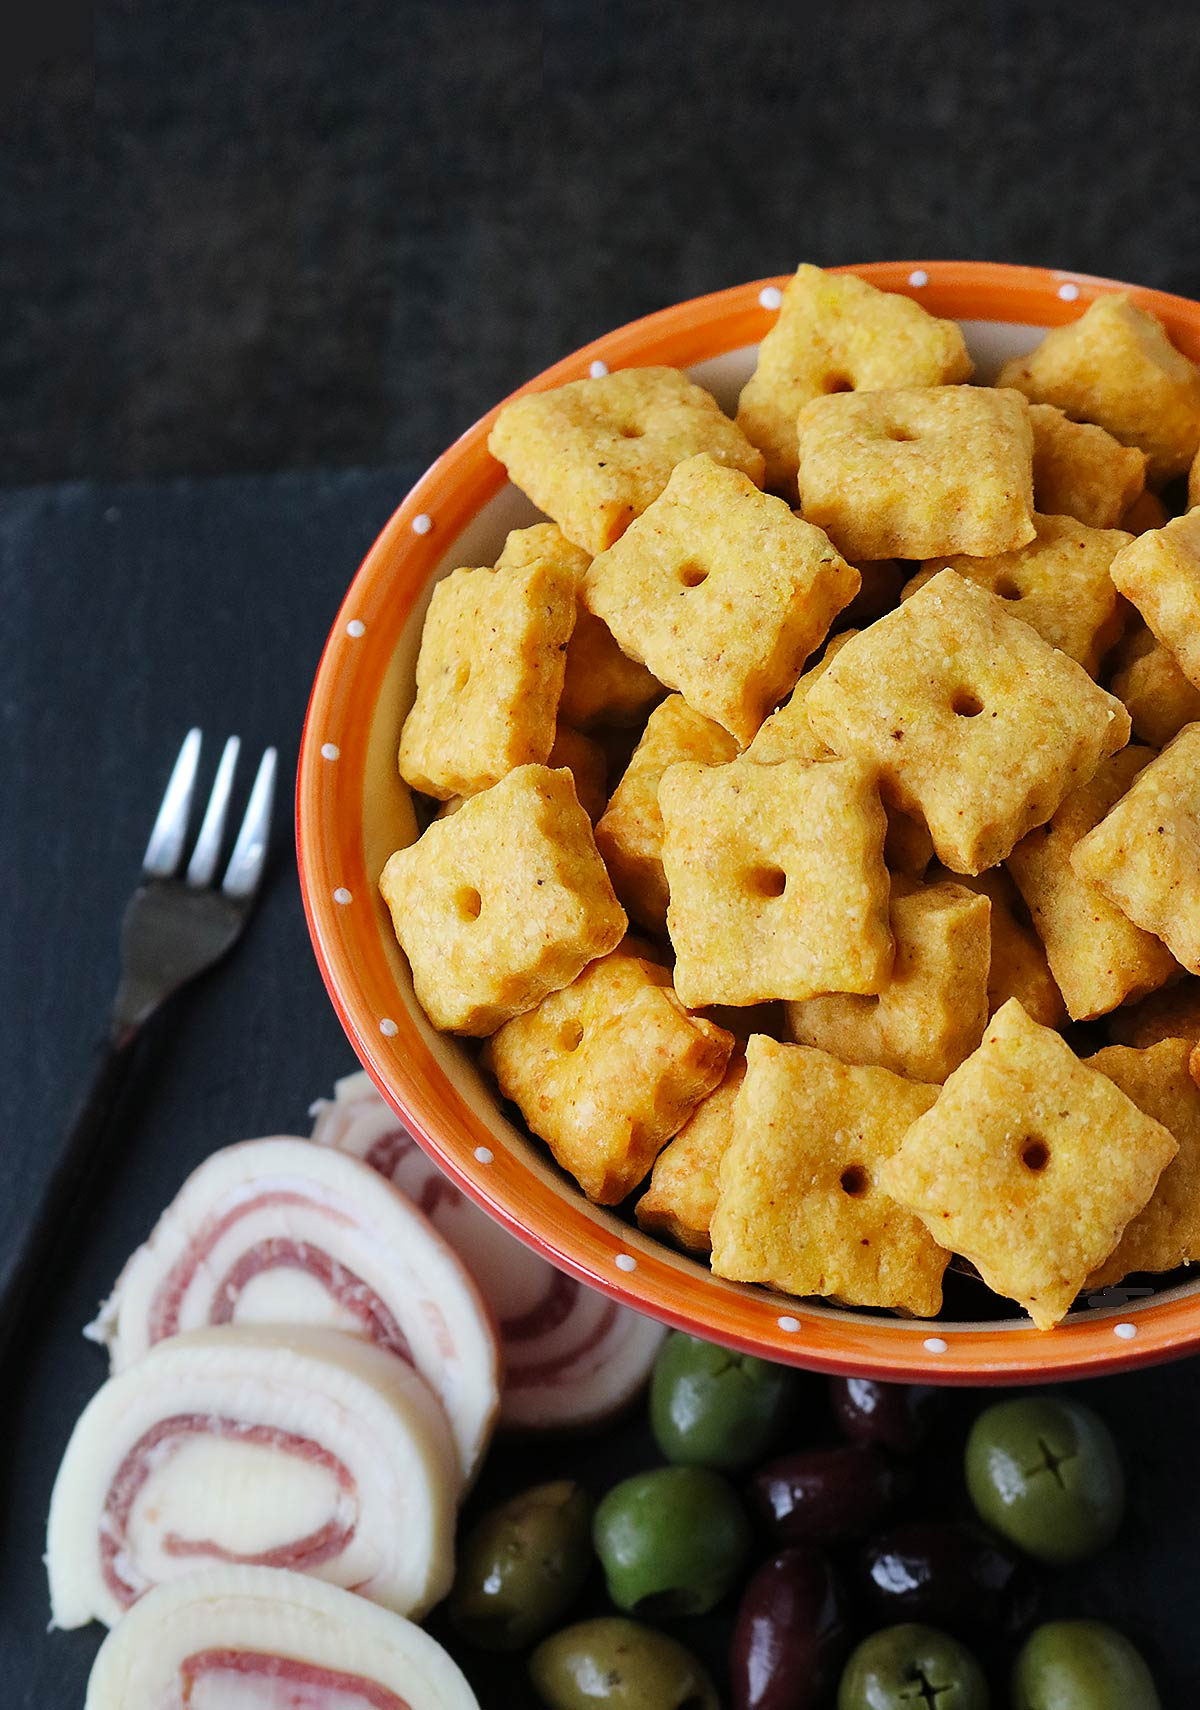 Homemade Cheez-its from SoupAddict.com